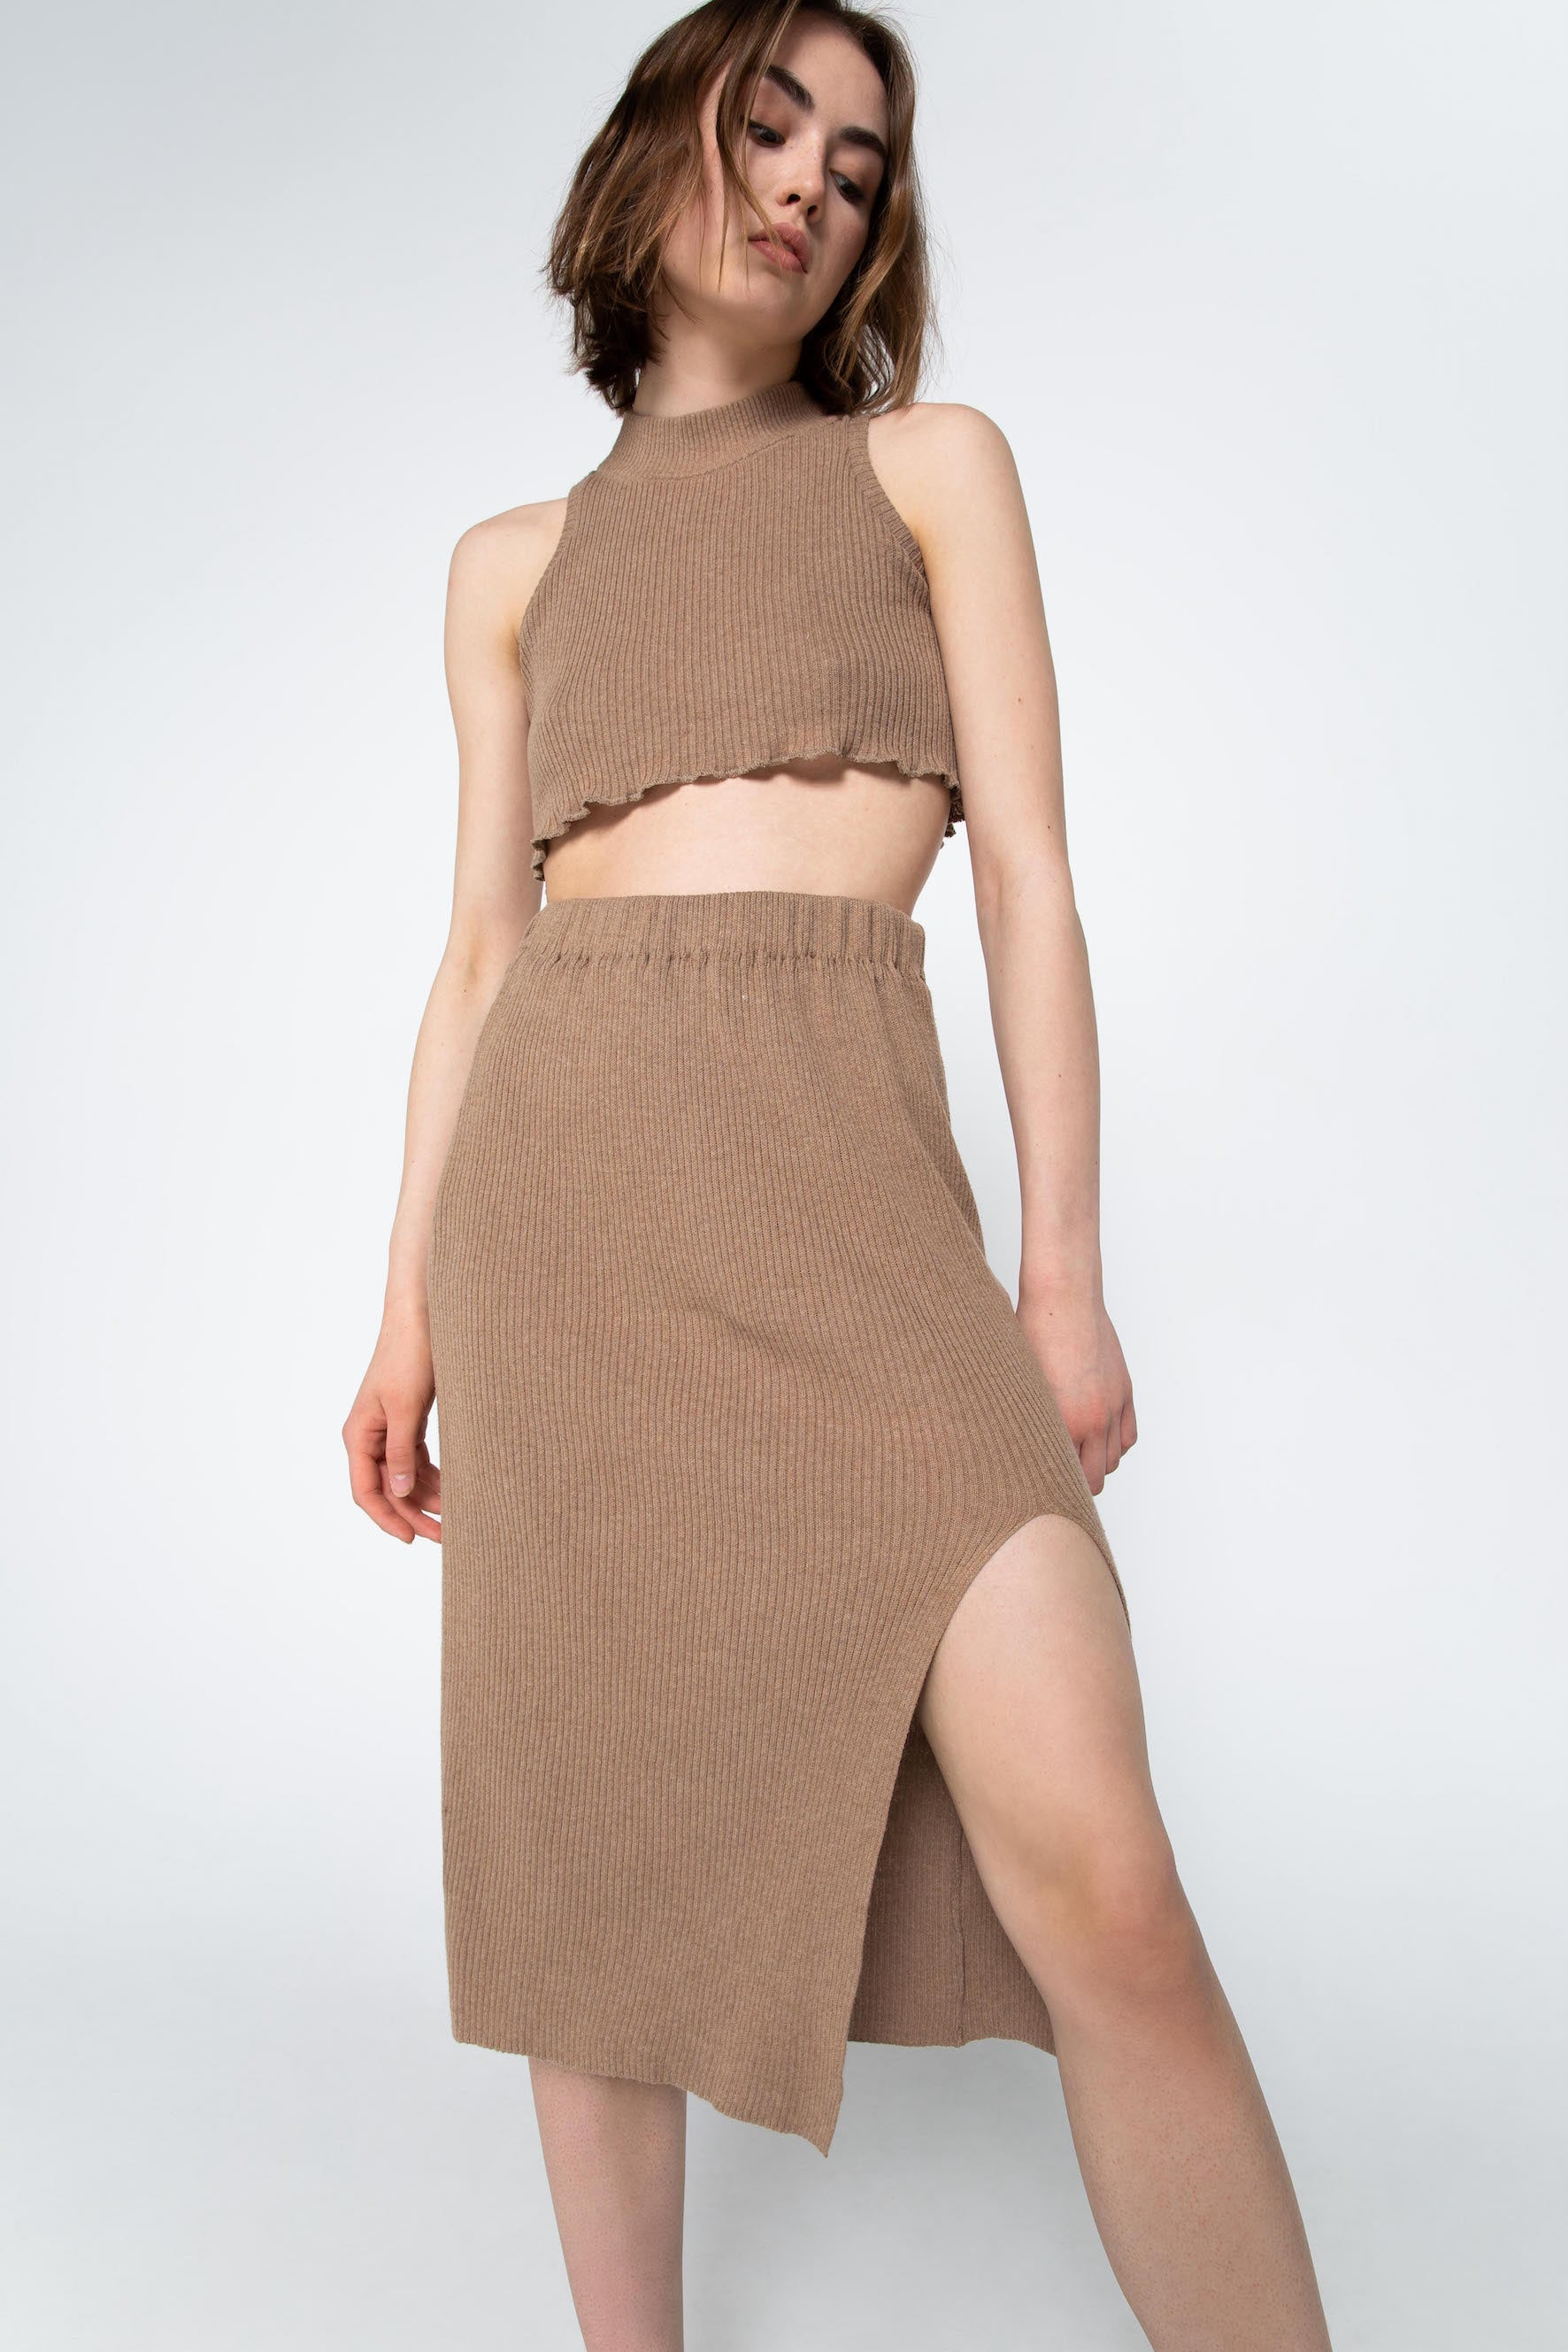 Brown knit skirt